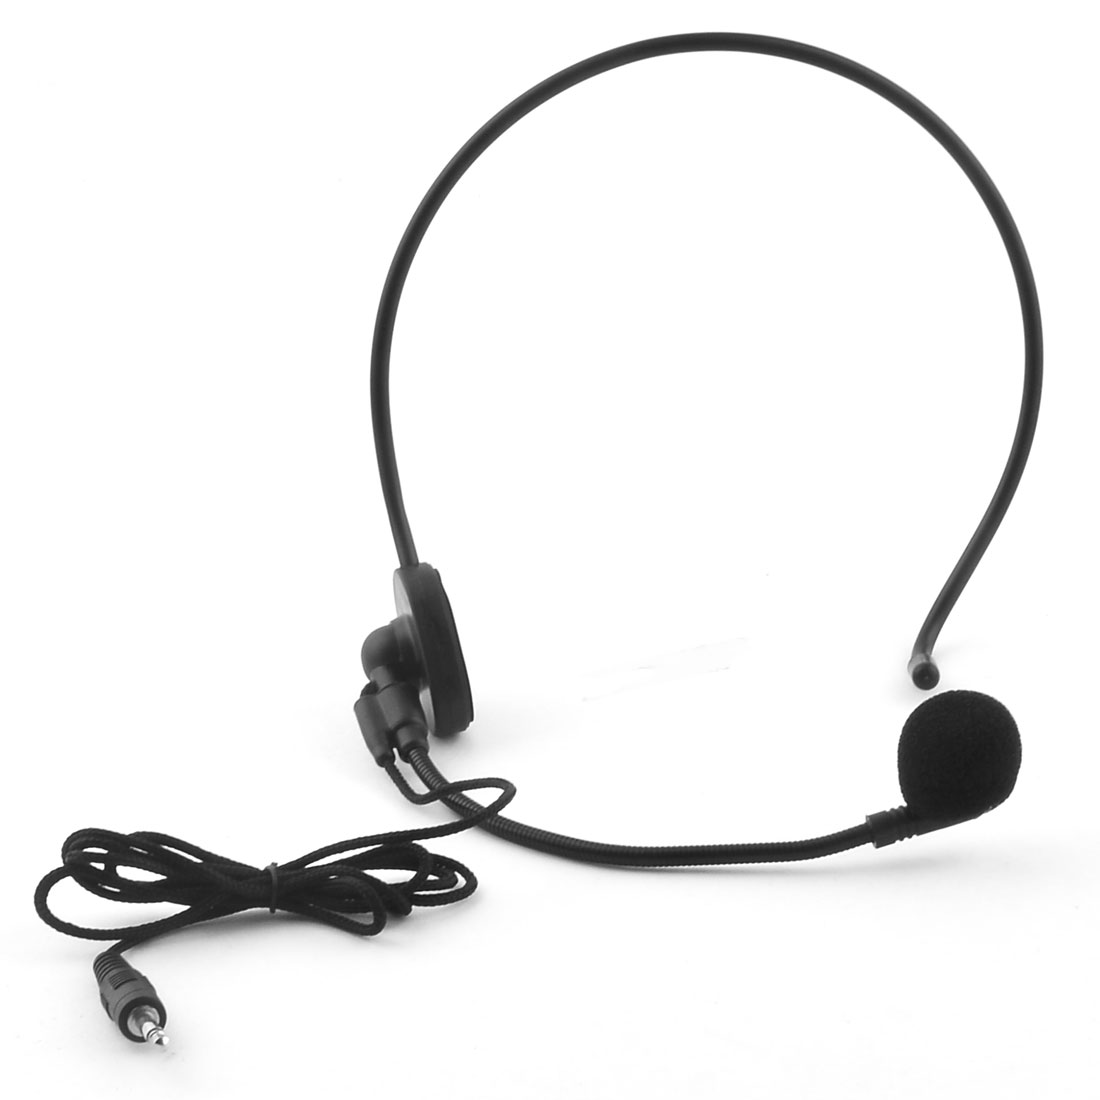 3.5mm Connector Head-mounted Headworn Headset Condenser Microphone Mic Wired Boom